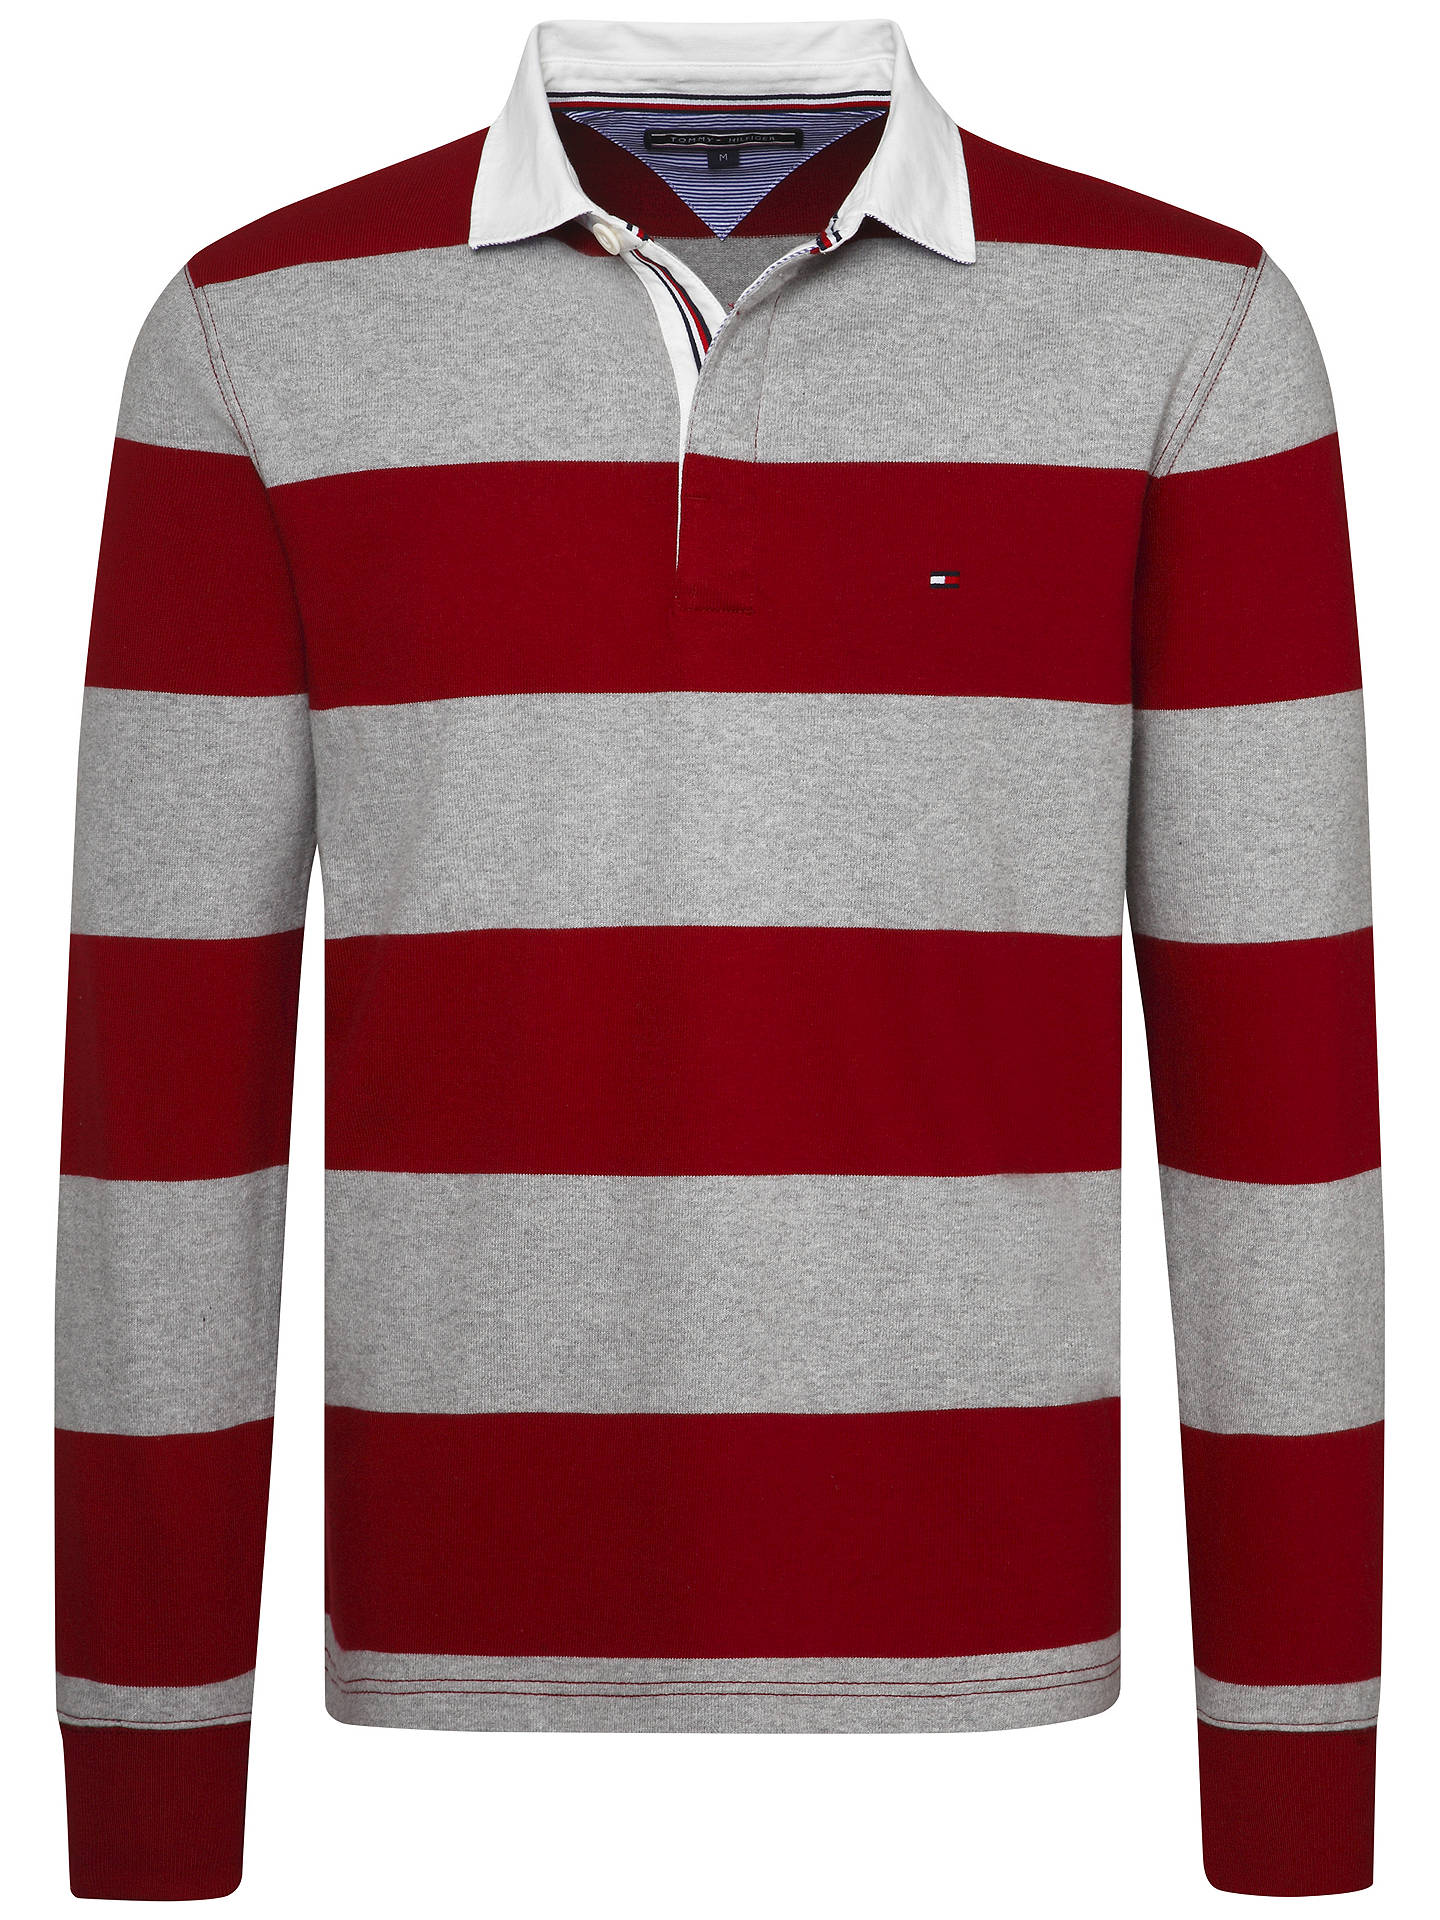 1a7a25eab ... Buy Tommy Hilfiger Iconic Stripe Rugby Shirt, Red/Light Grey, S Online  at ...